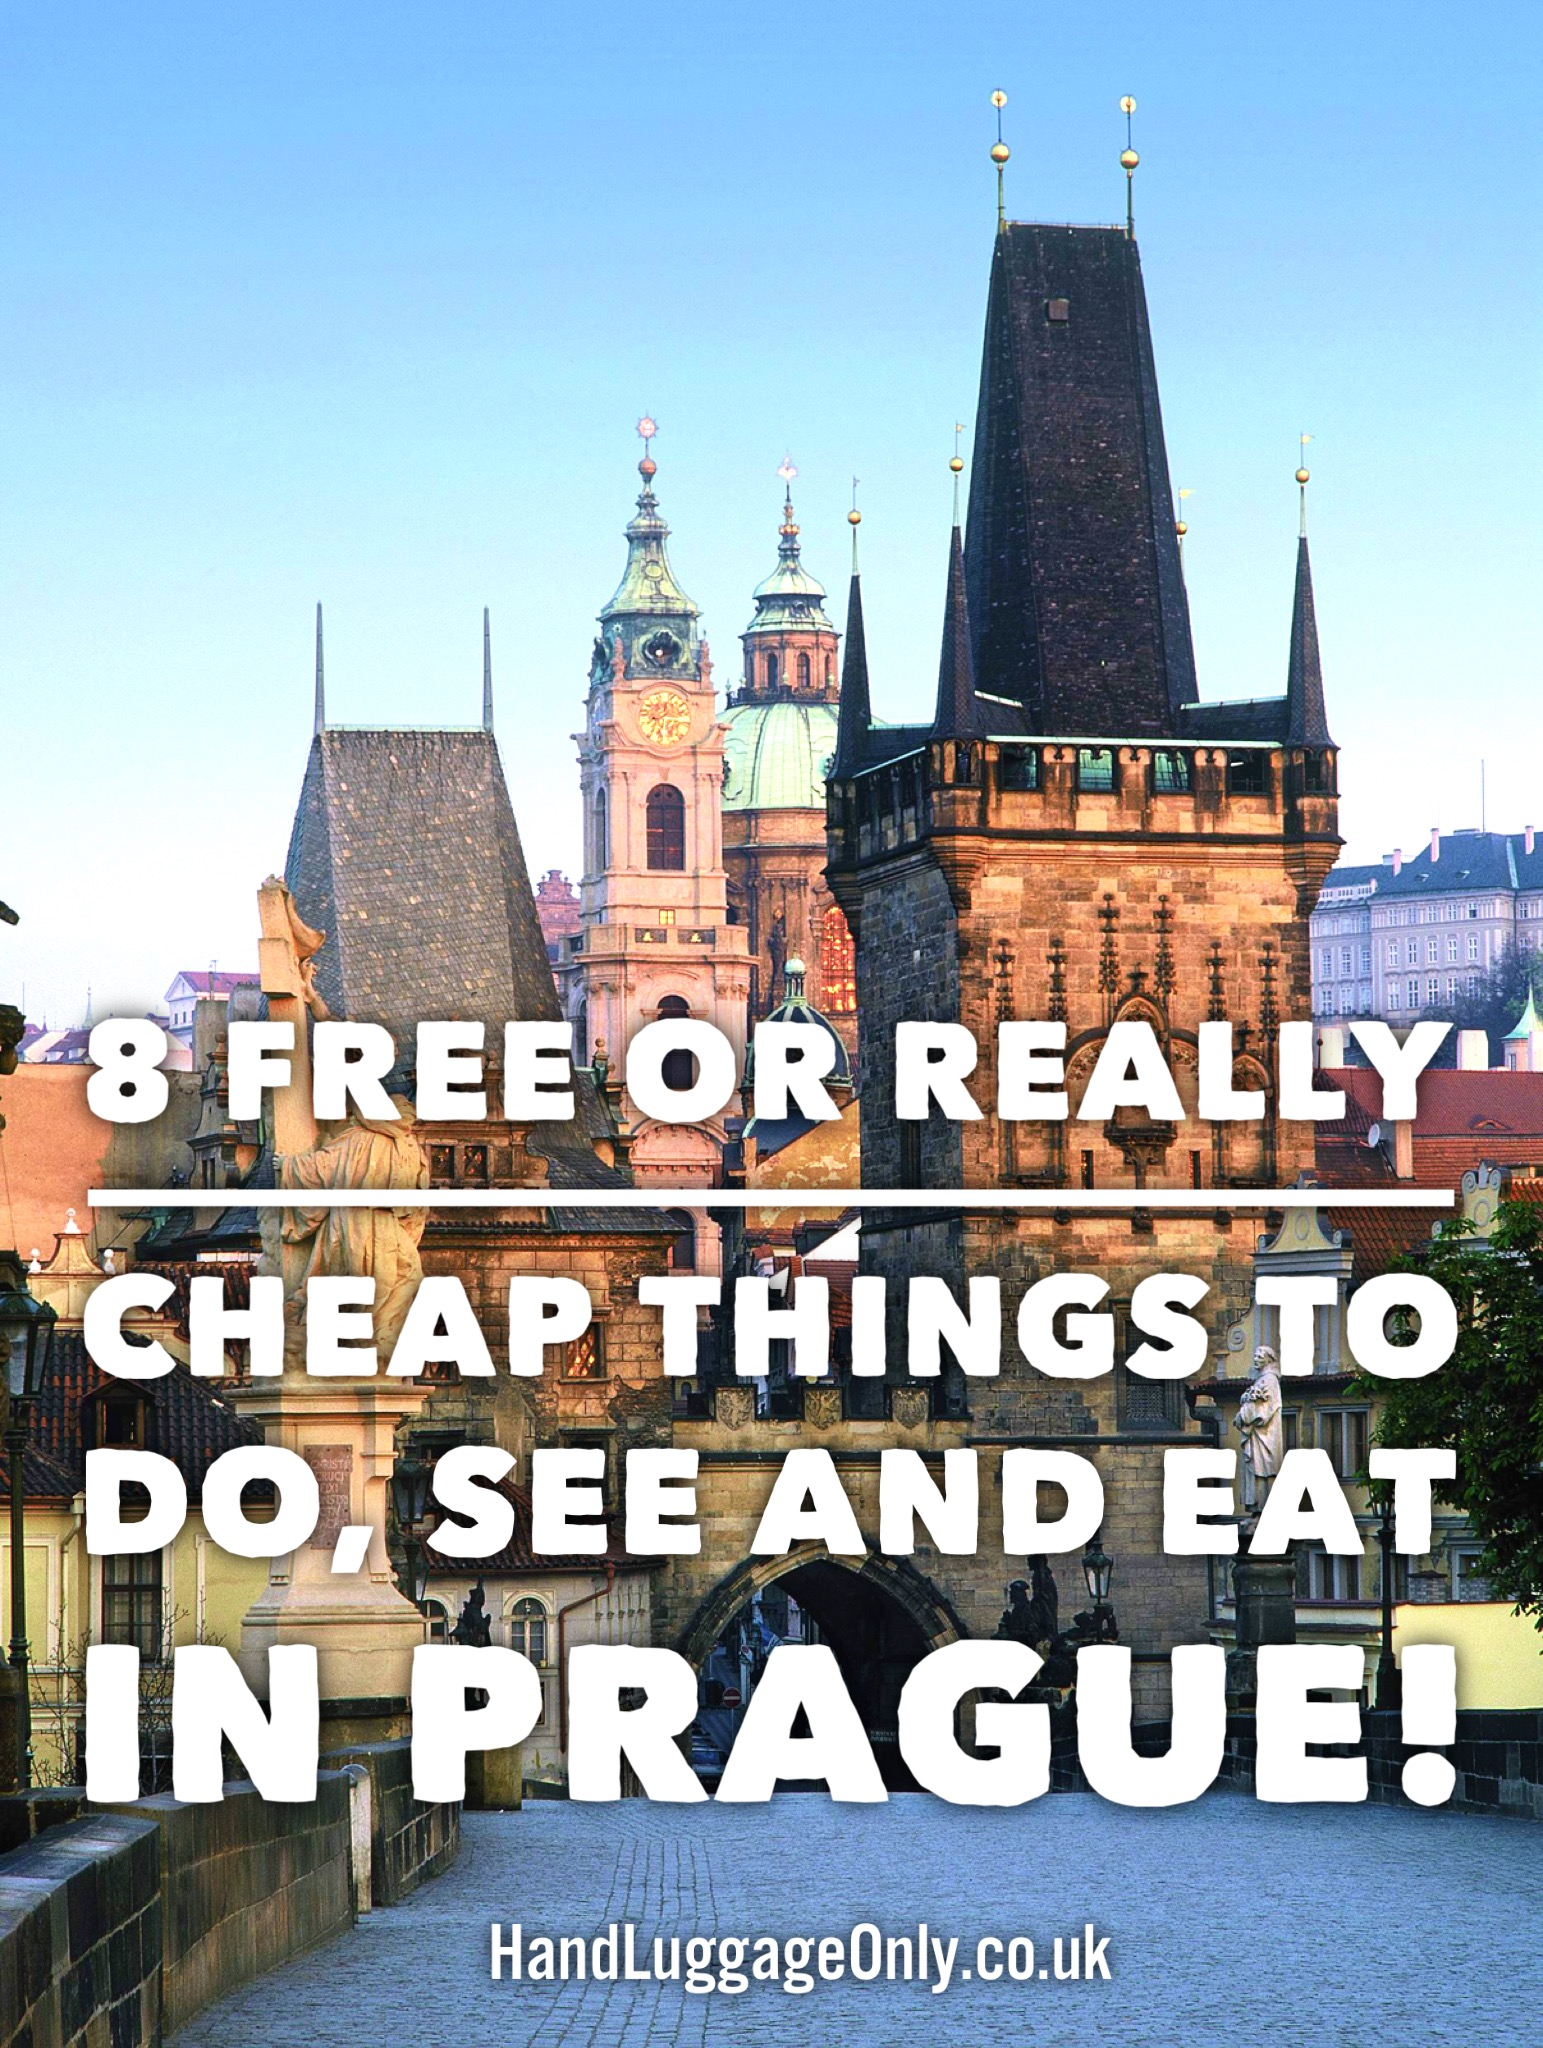 8 free or really cheap things to do see and eat in prague